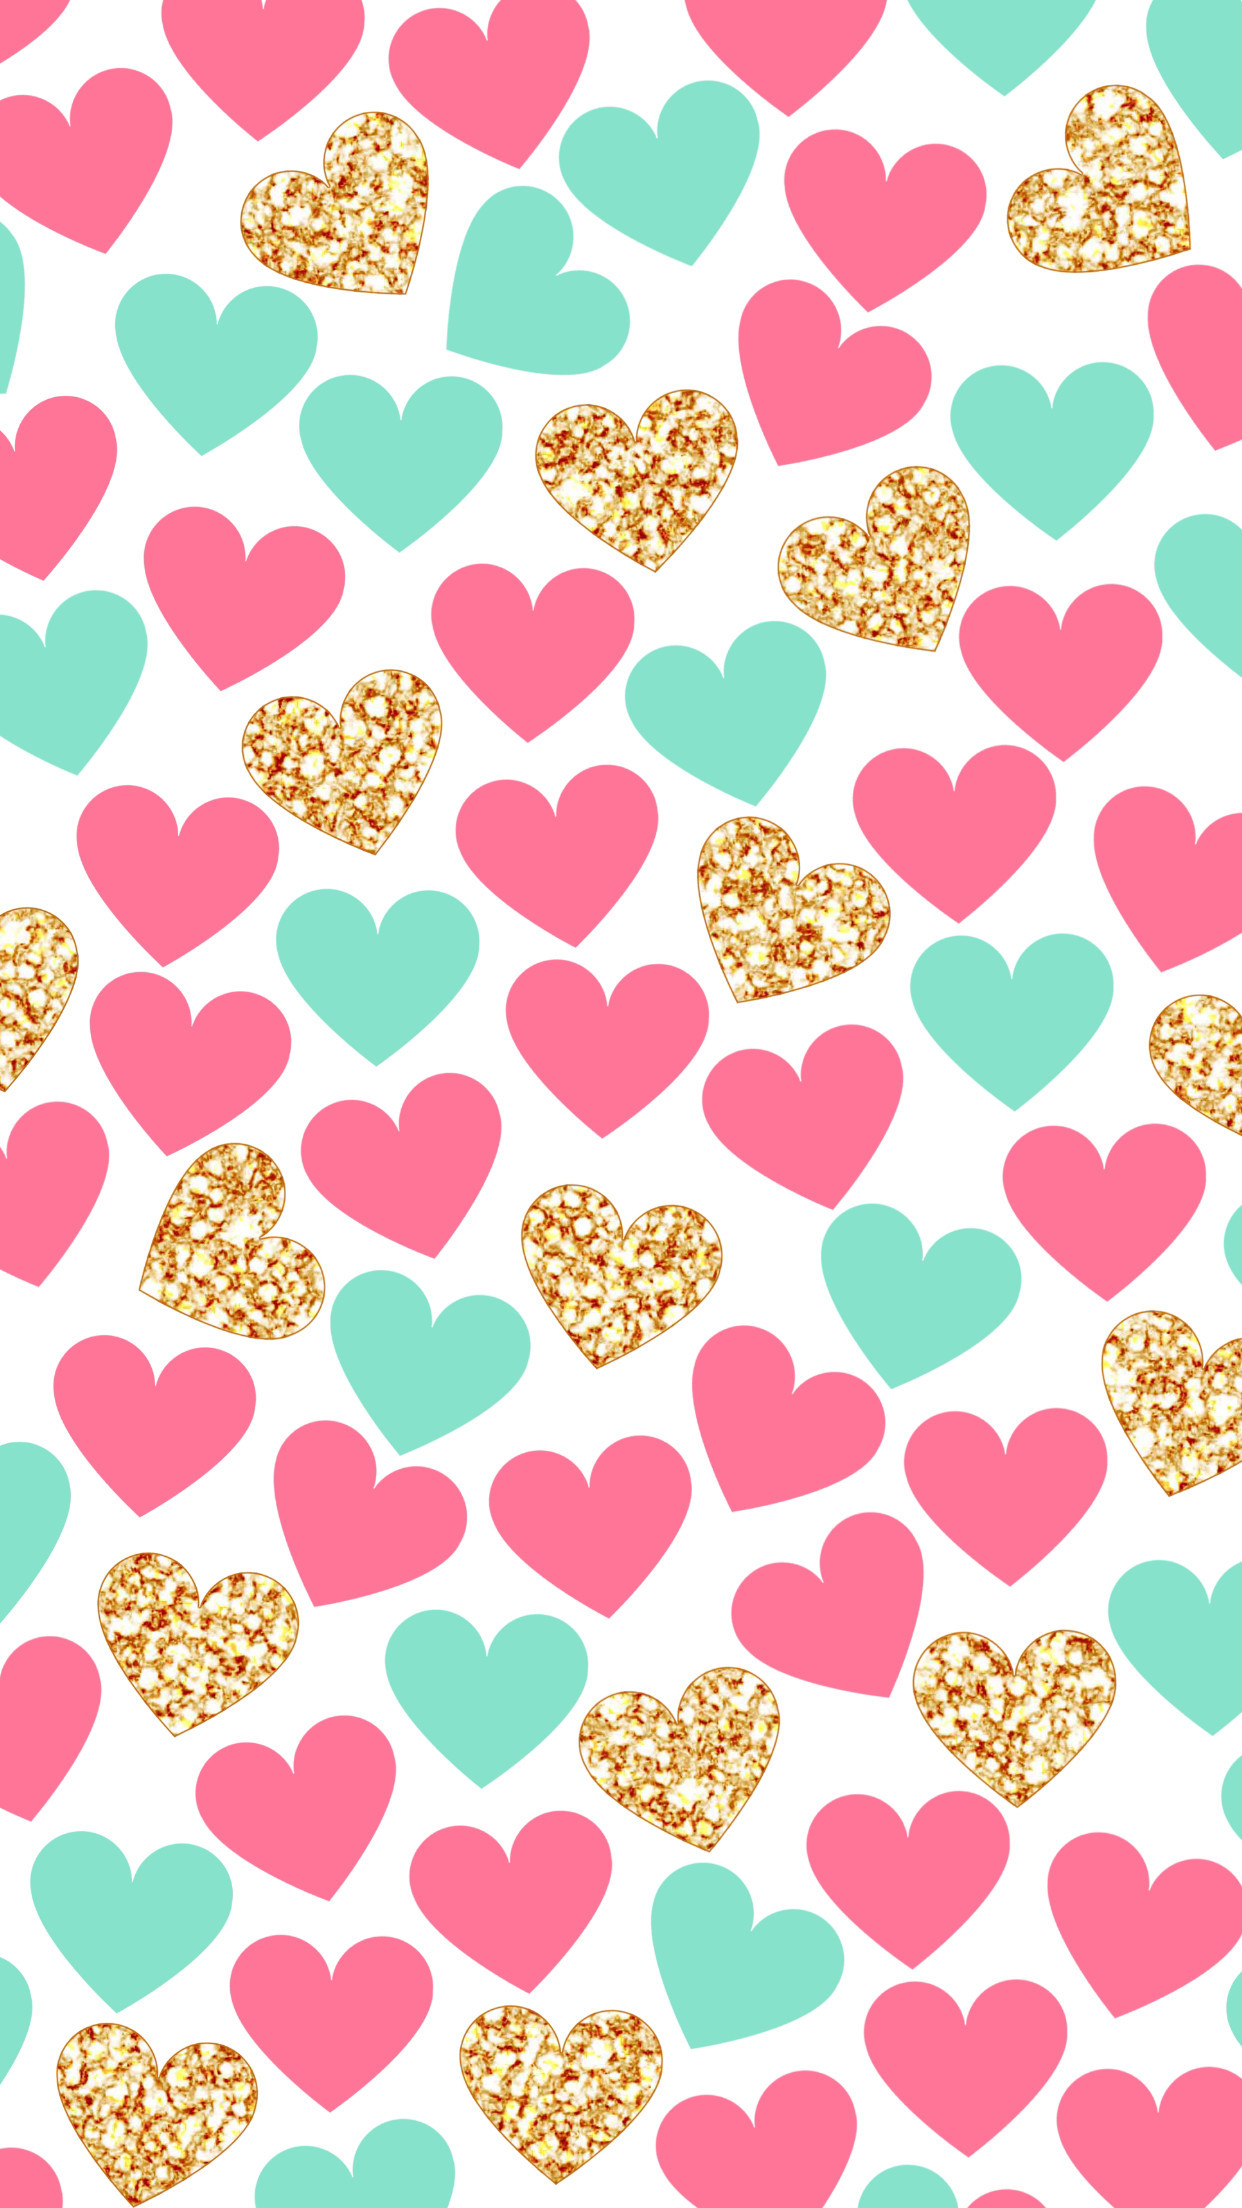 Cute Heart Wallpaper For Iphone 71 Images